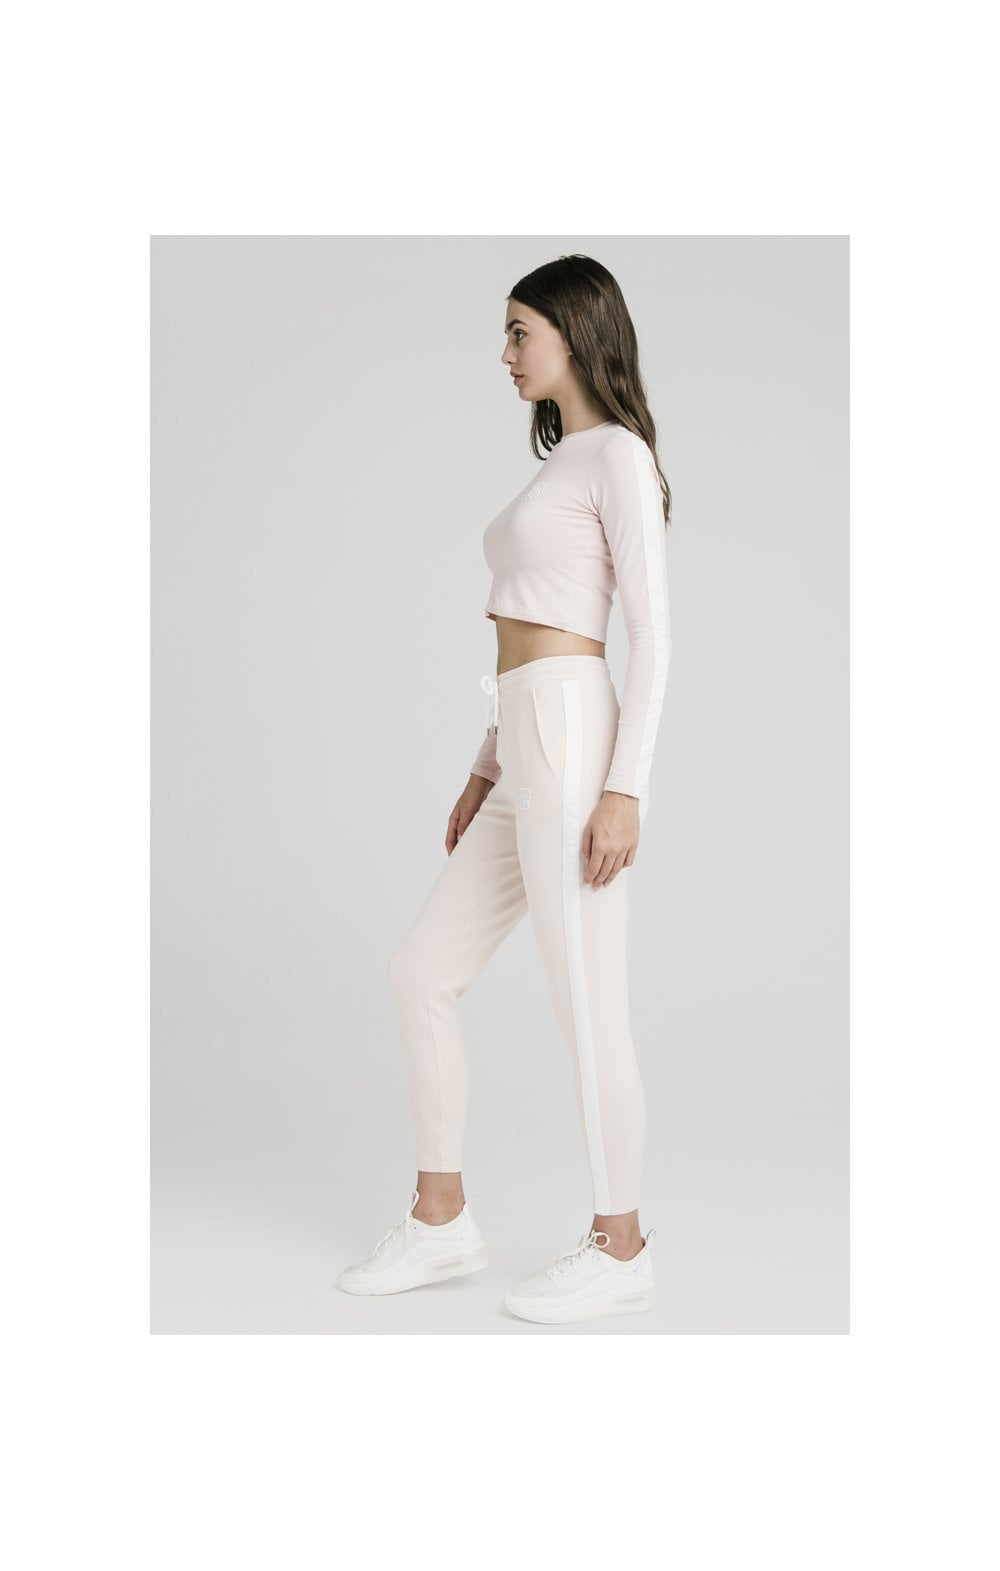 SikSilk Tape Track Pants - Cloud Pink (3)